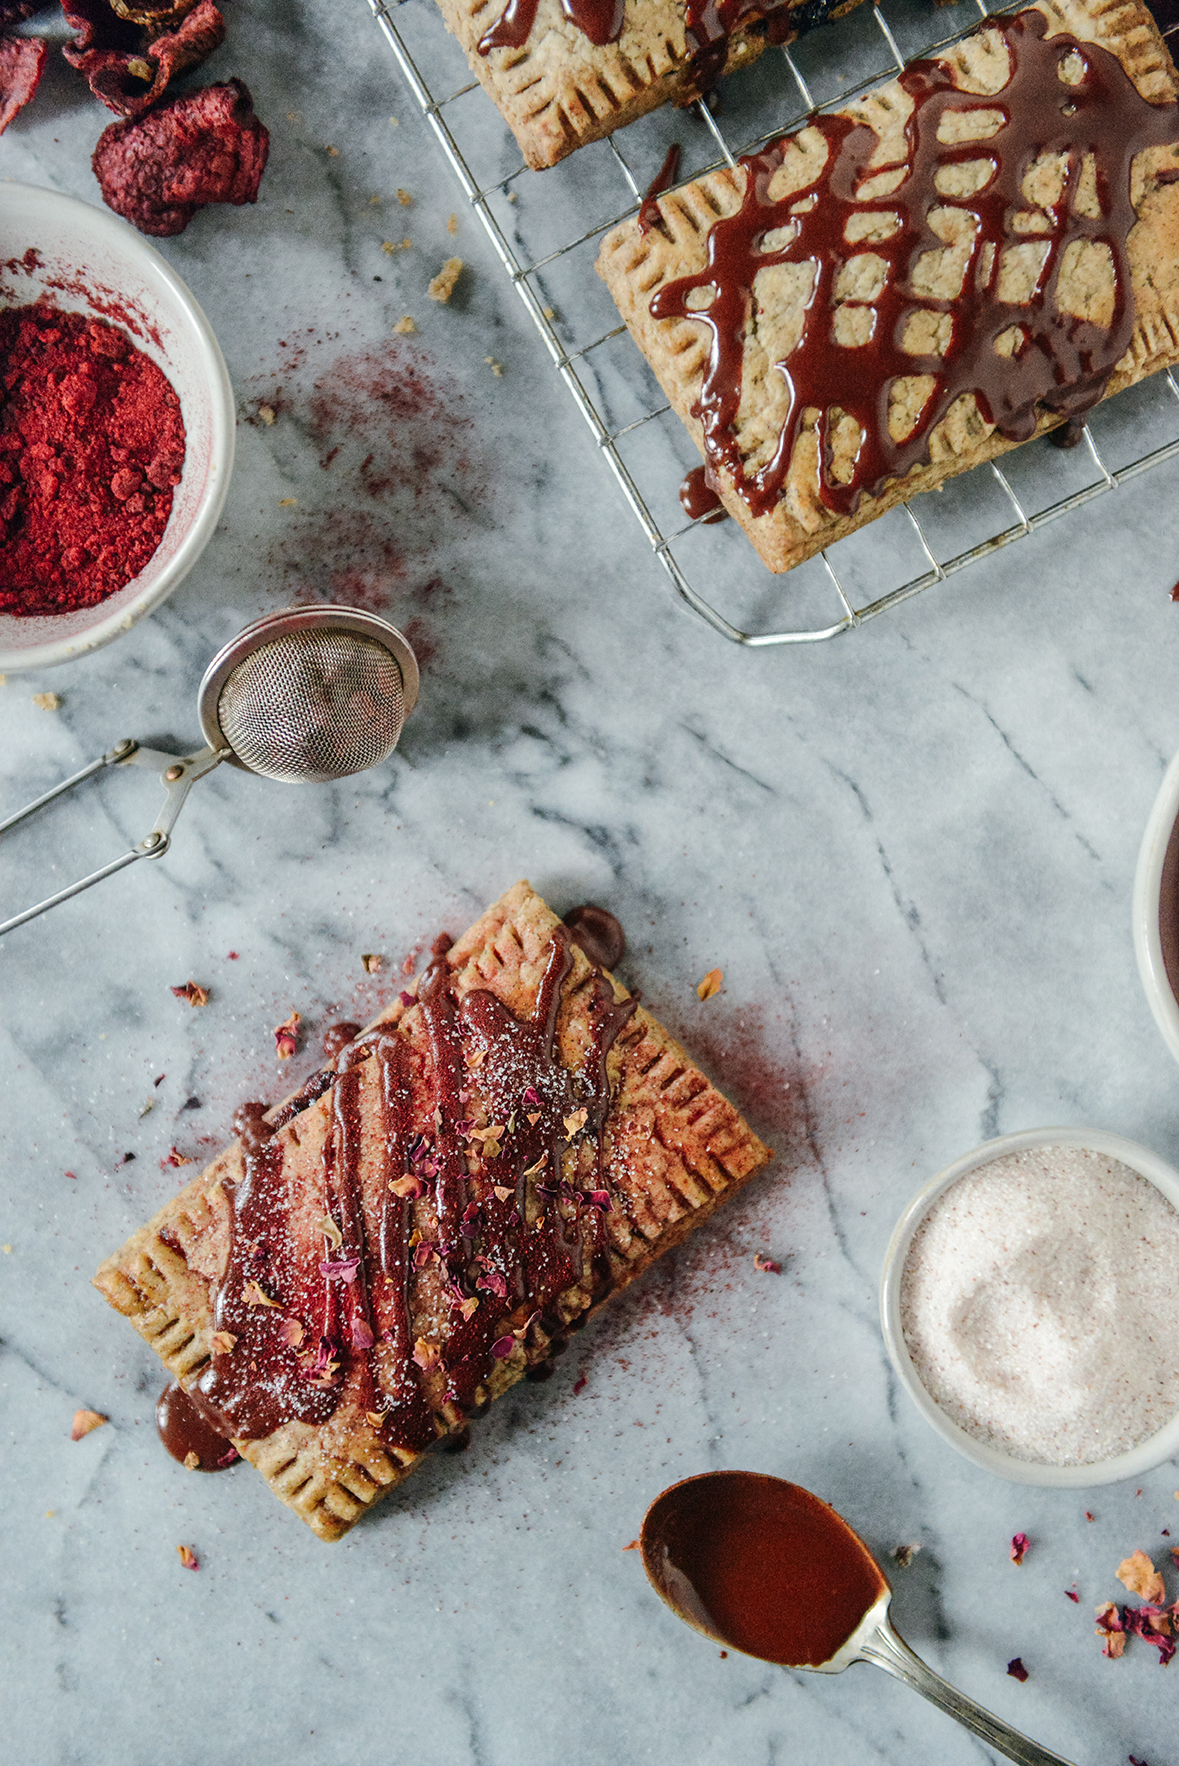 Pie for Breakfast: Homemade Whole Grain Pop Tarts